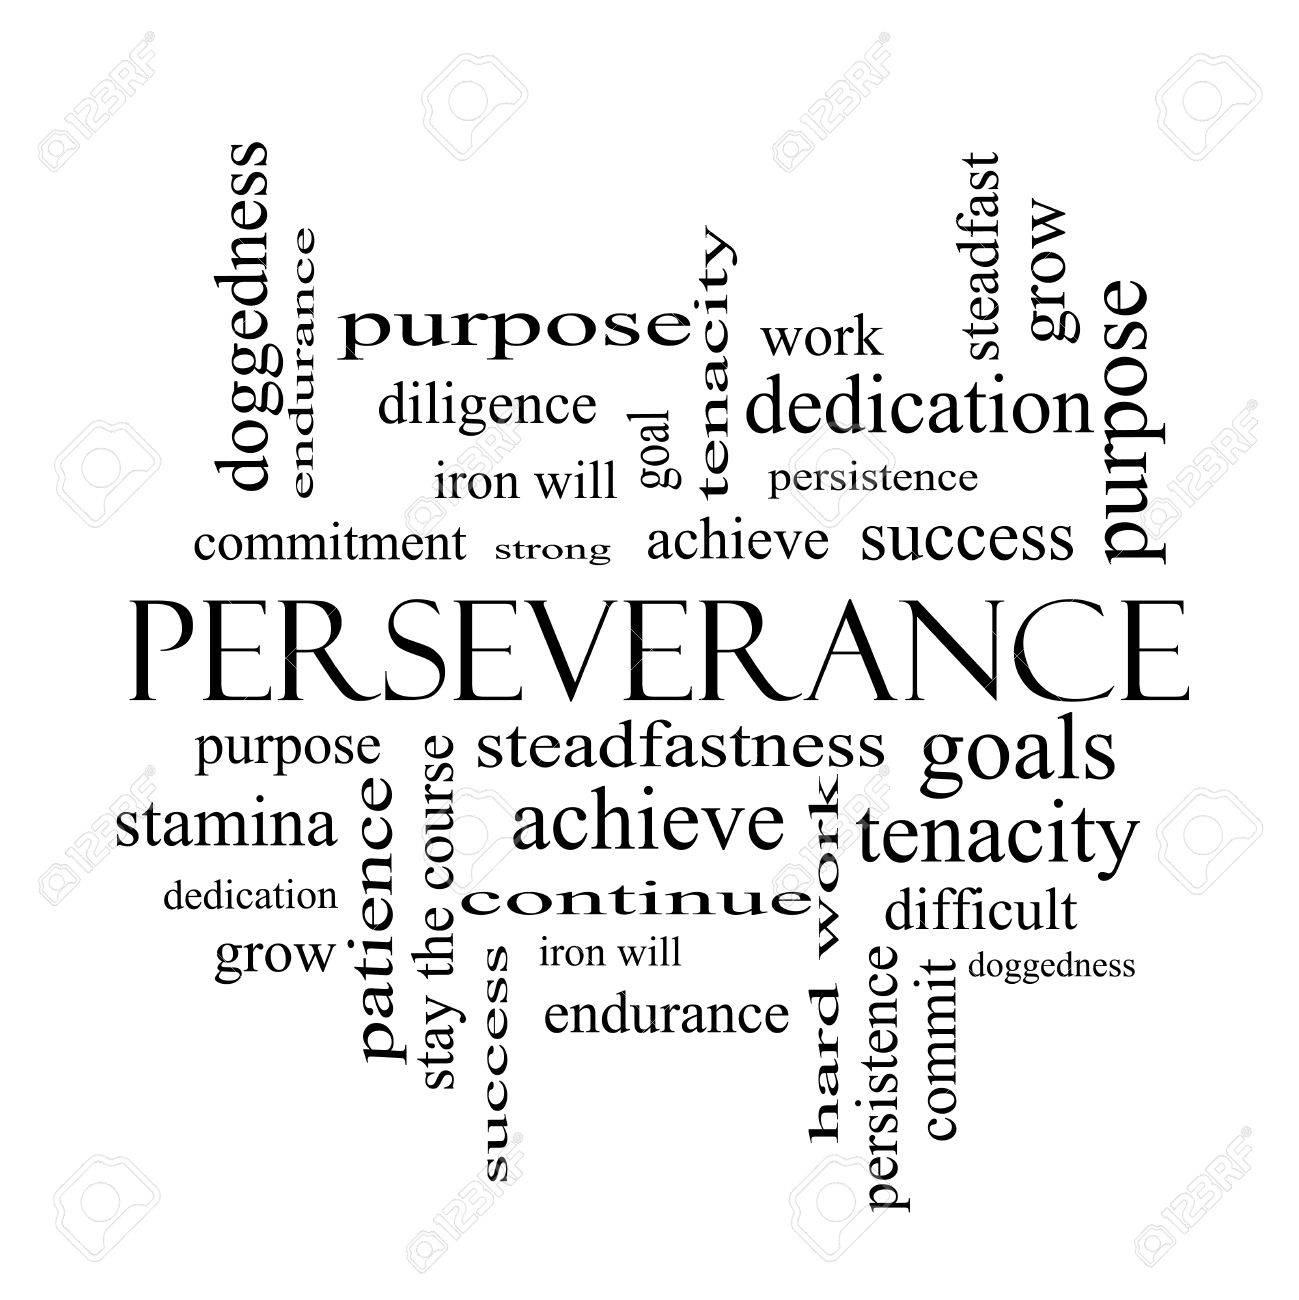 perseverance word cloud concept in black and white with great